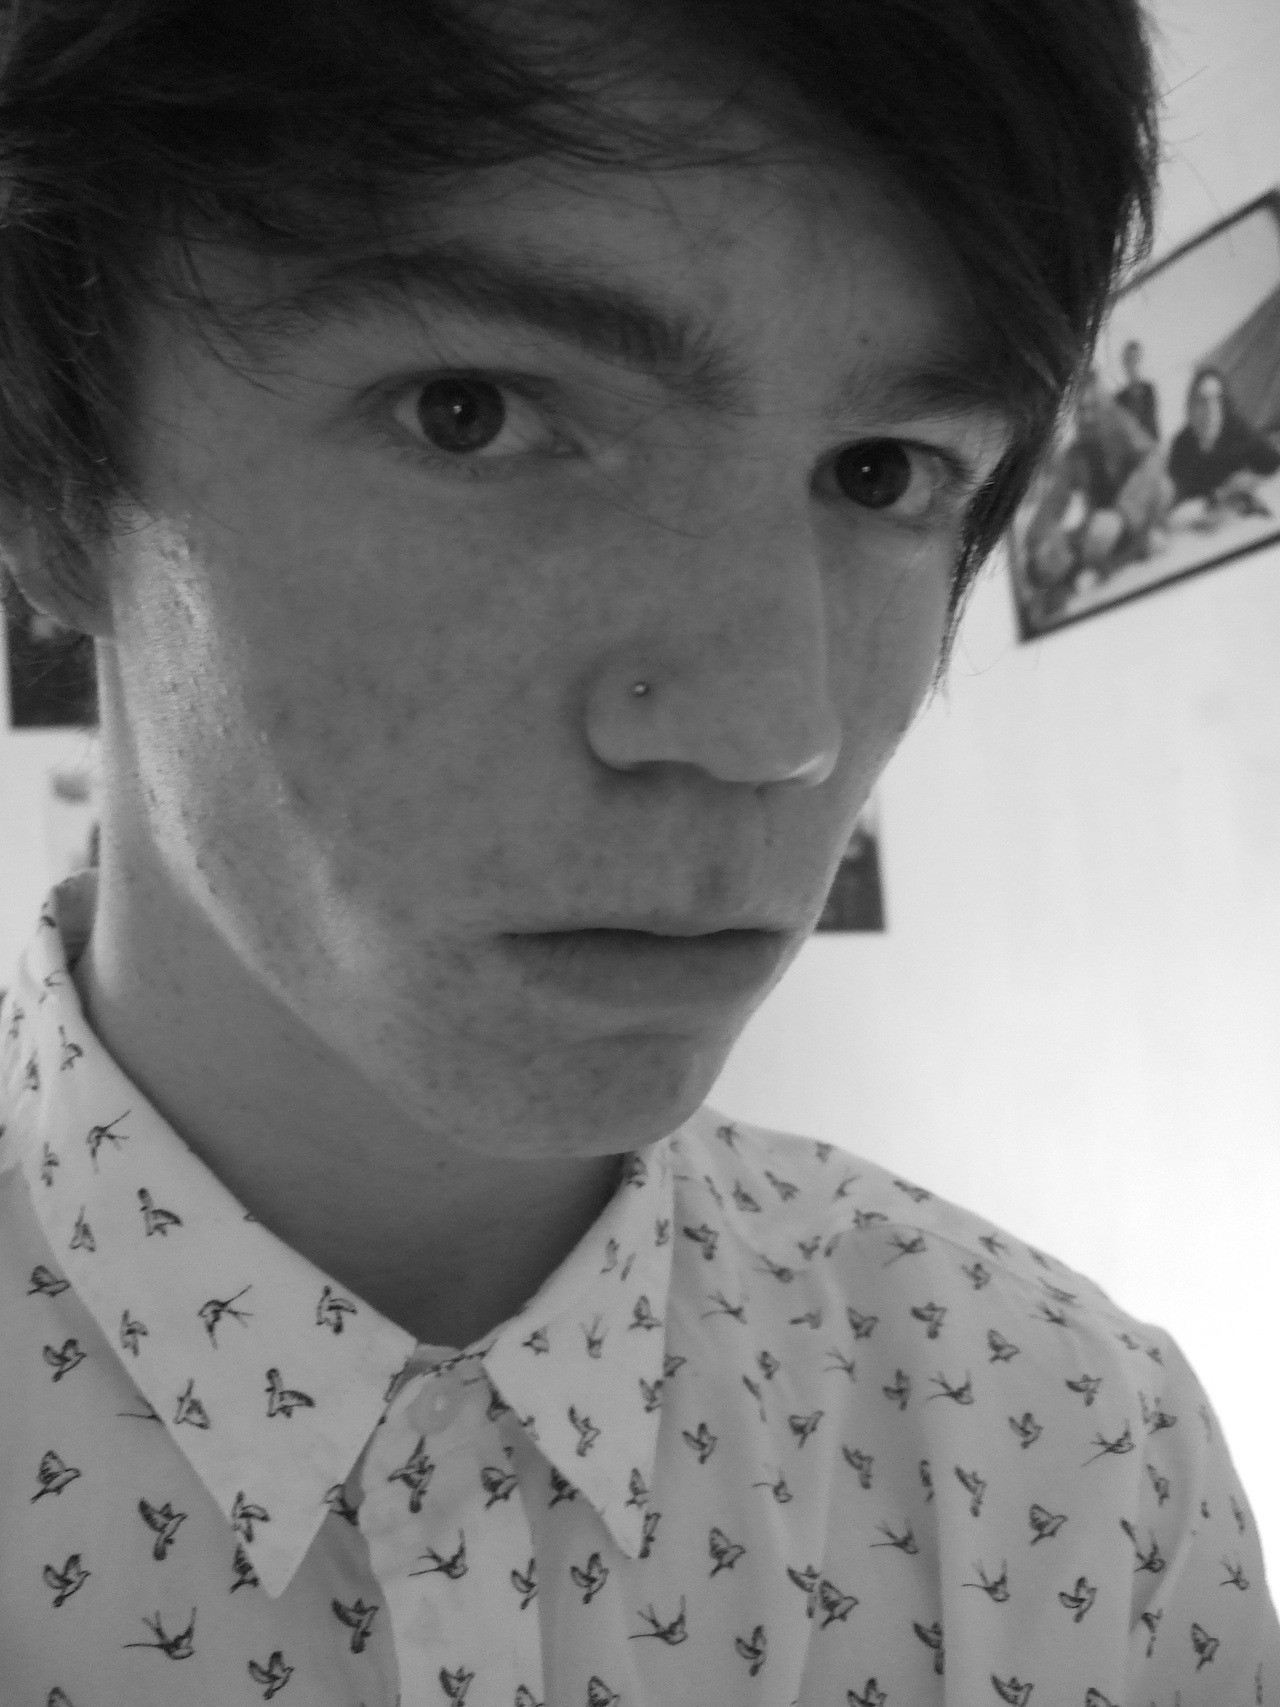 new shirt and nose piercing :D